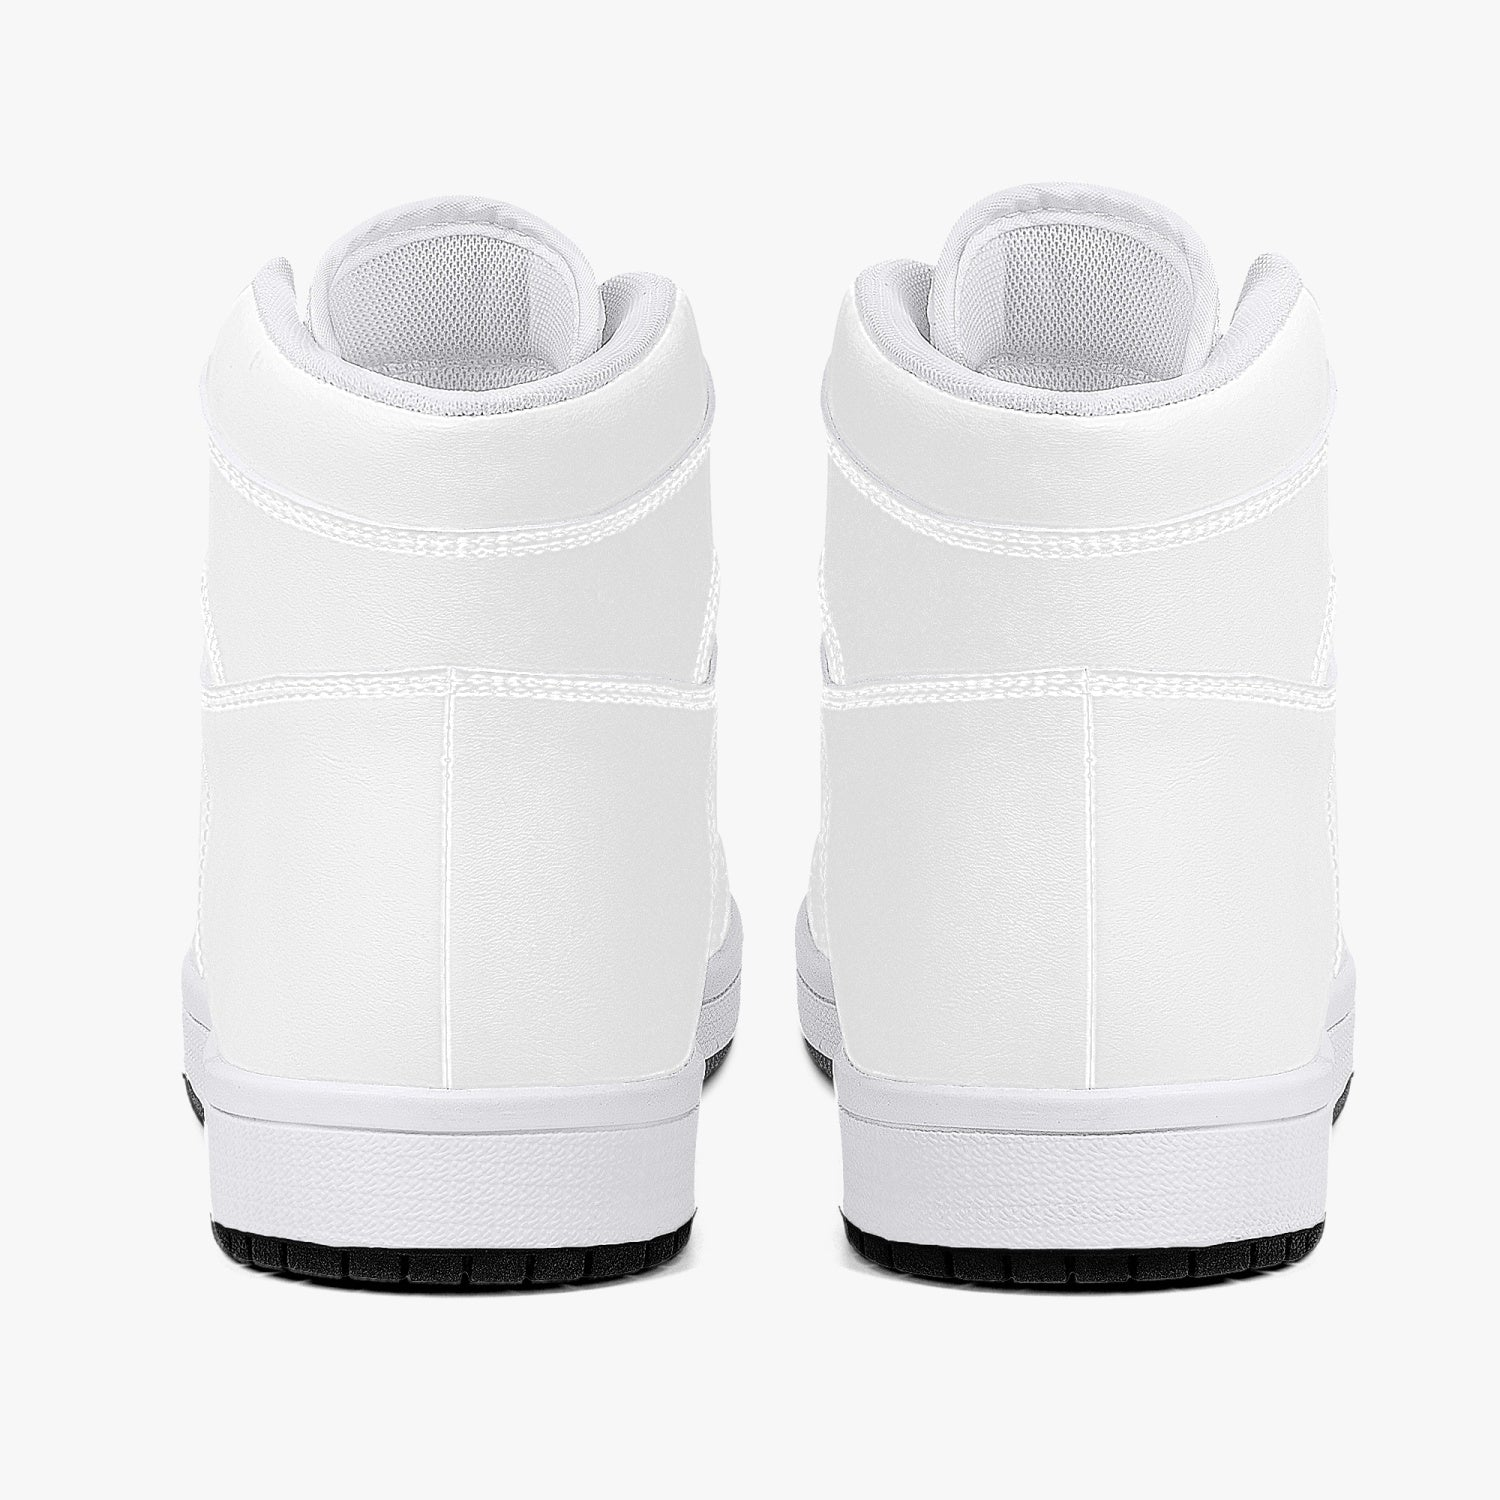 trag High-Top Leather Sneakers - White / Black